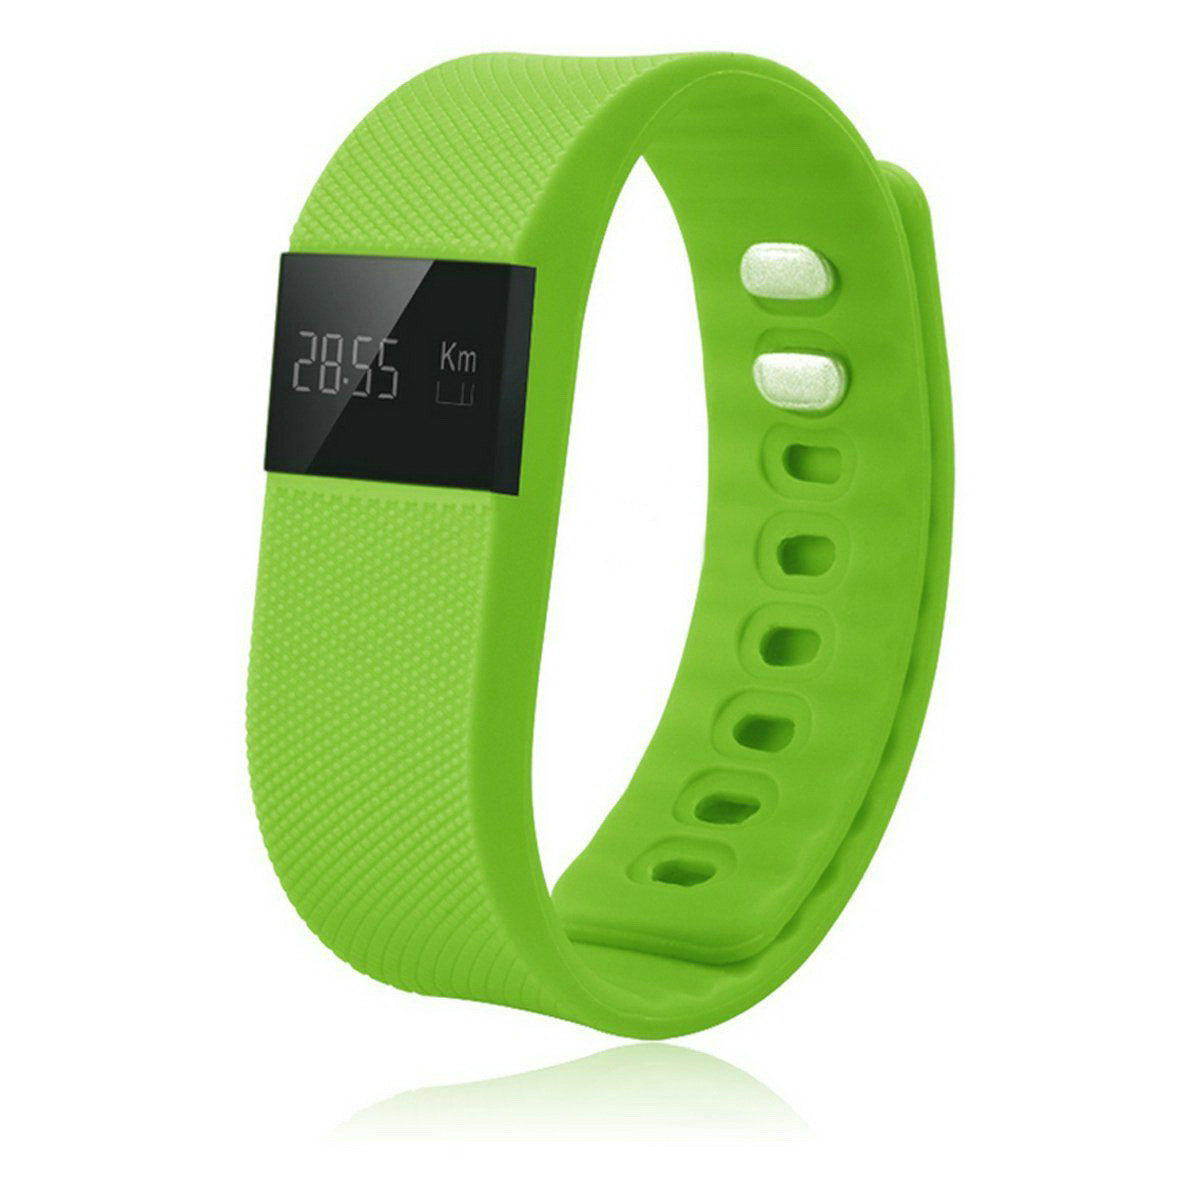 Smartband Waterproof Wristband Fitness Sleep Tracker Pedometer Bluetooth 4.0 For Samsung iPhone IOS Android - All In One Place With Us - 3